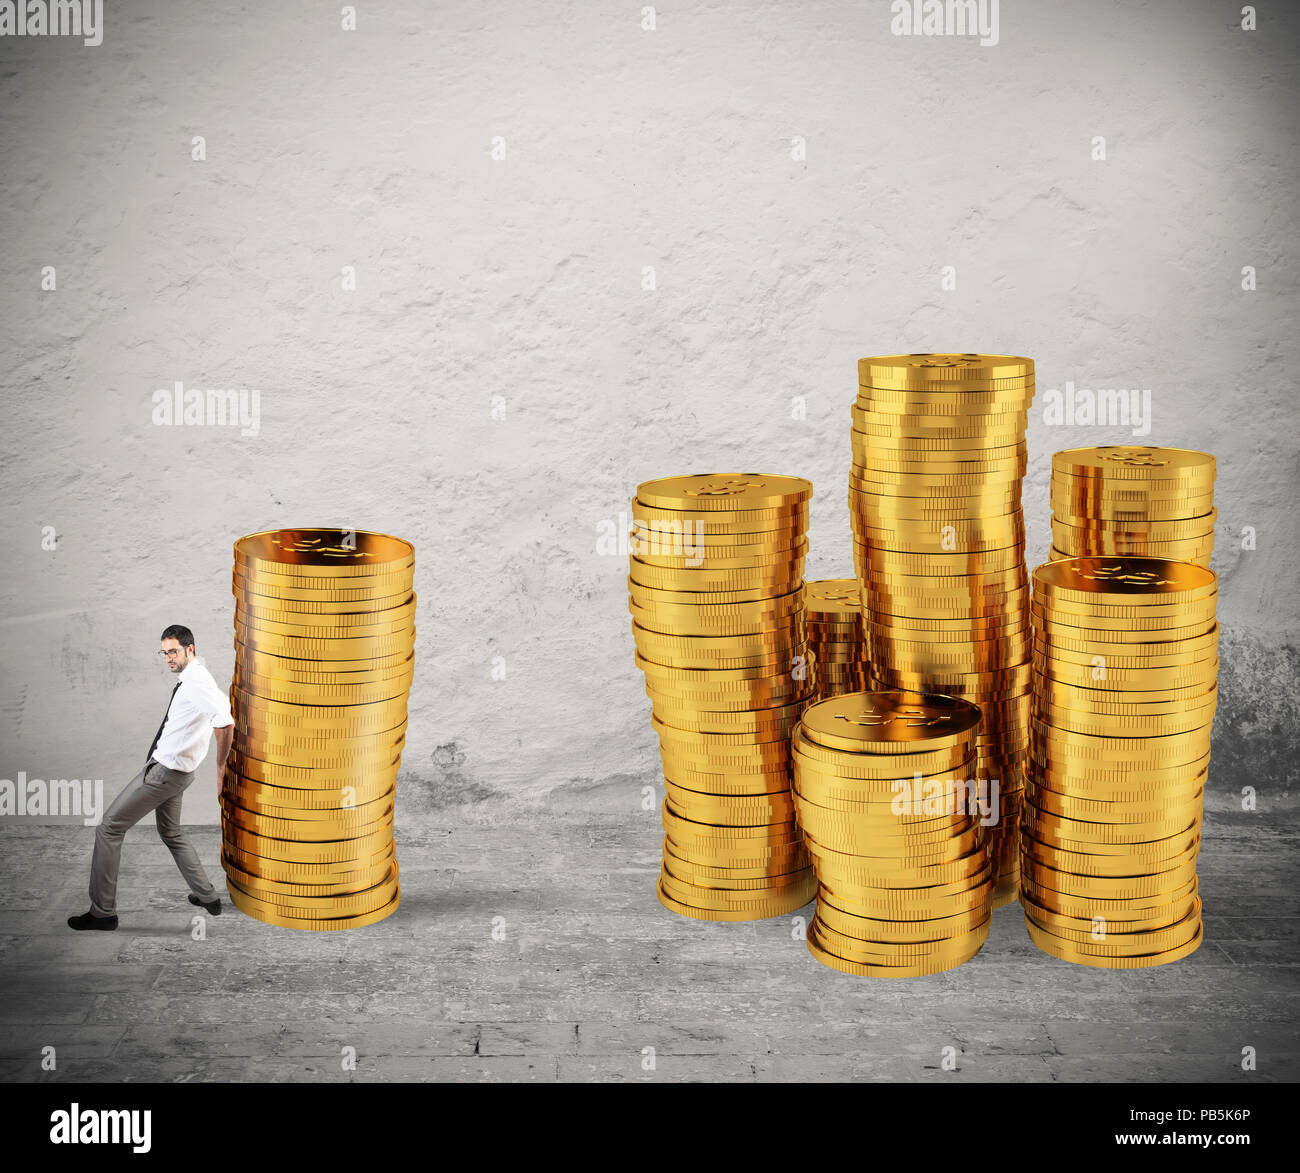 Businessman moves a pile of coins to a group of money. concept of difficulty to saving money - Stock Image